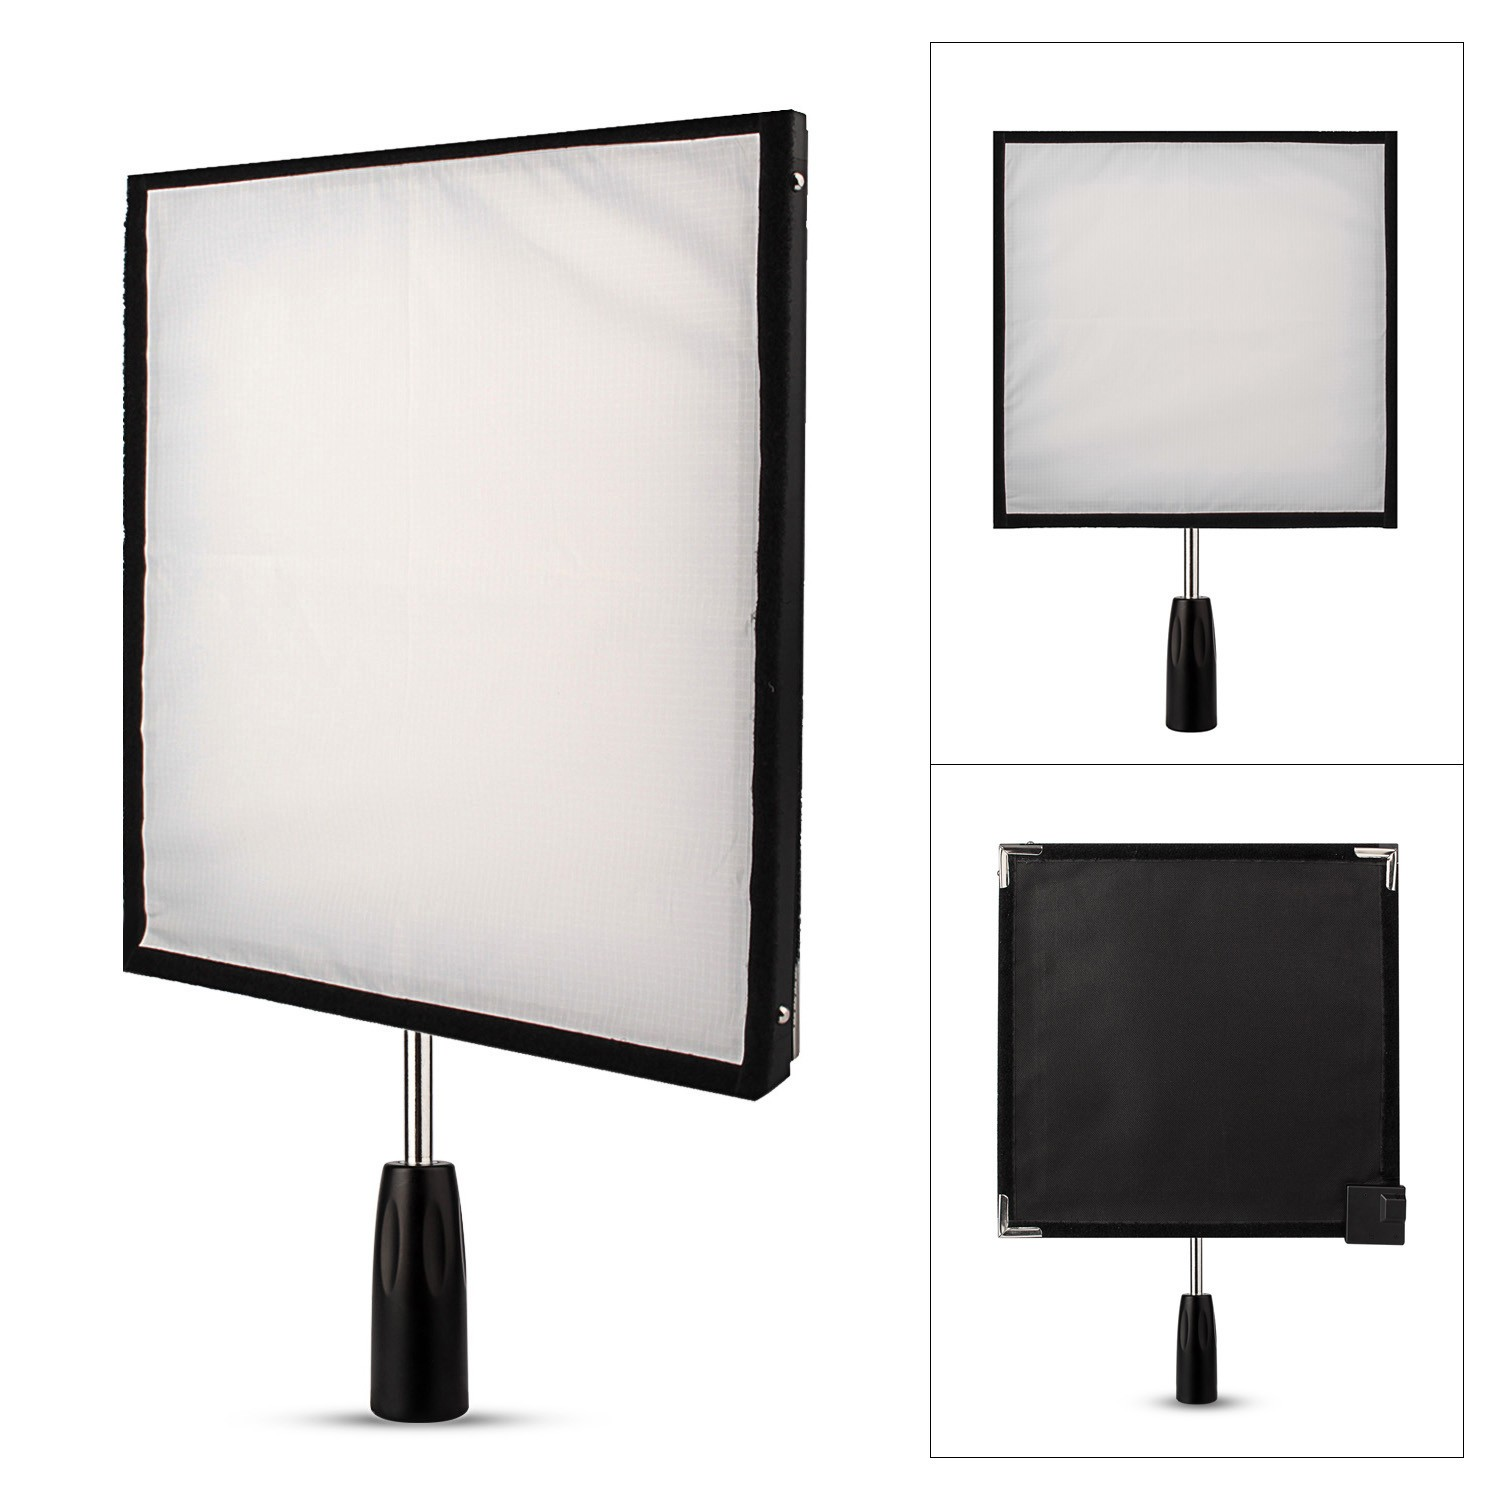 Travor FL 3030 30x30cm Flex Mat 5500K 256 LED Flexible Moldable LED Video Fabric Light Slim Ultralight Panel with 2.4G Remote